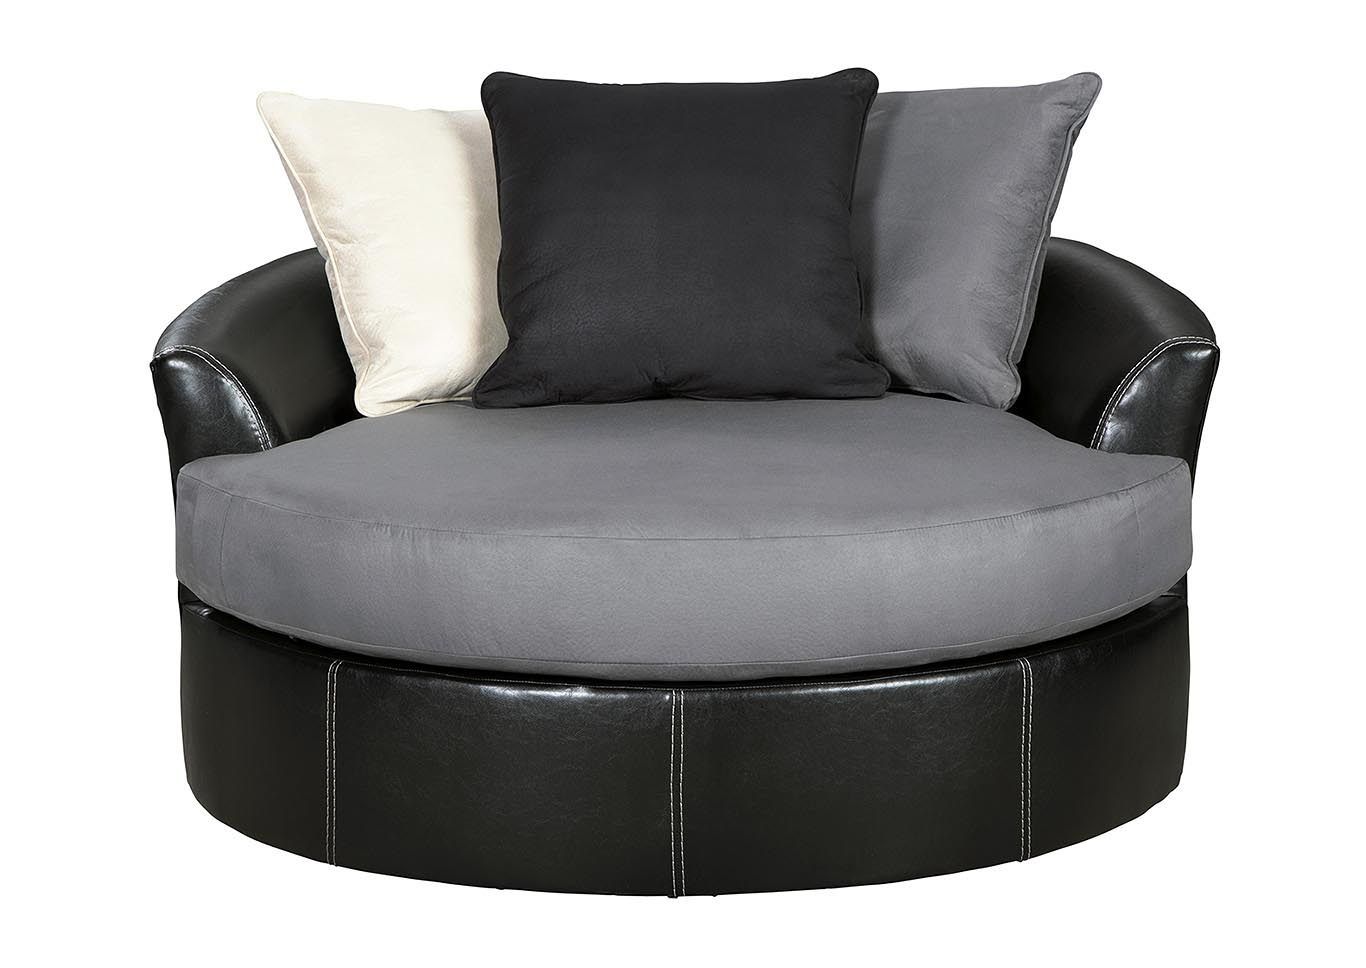 Strange Ivan Smith Jacurso Charcoal Oversized Swivel Accent Chair Beatyapartments Chair Design Images Beatyapartmentscom